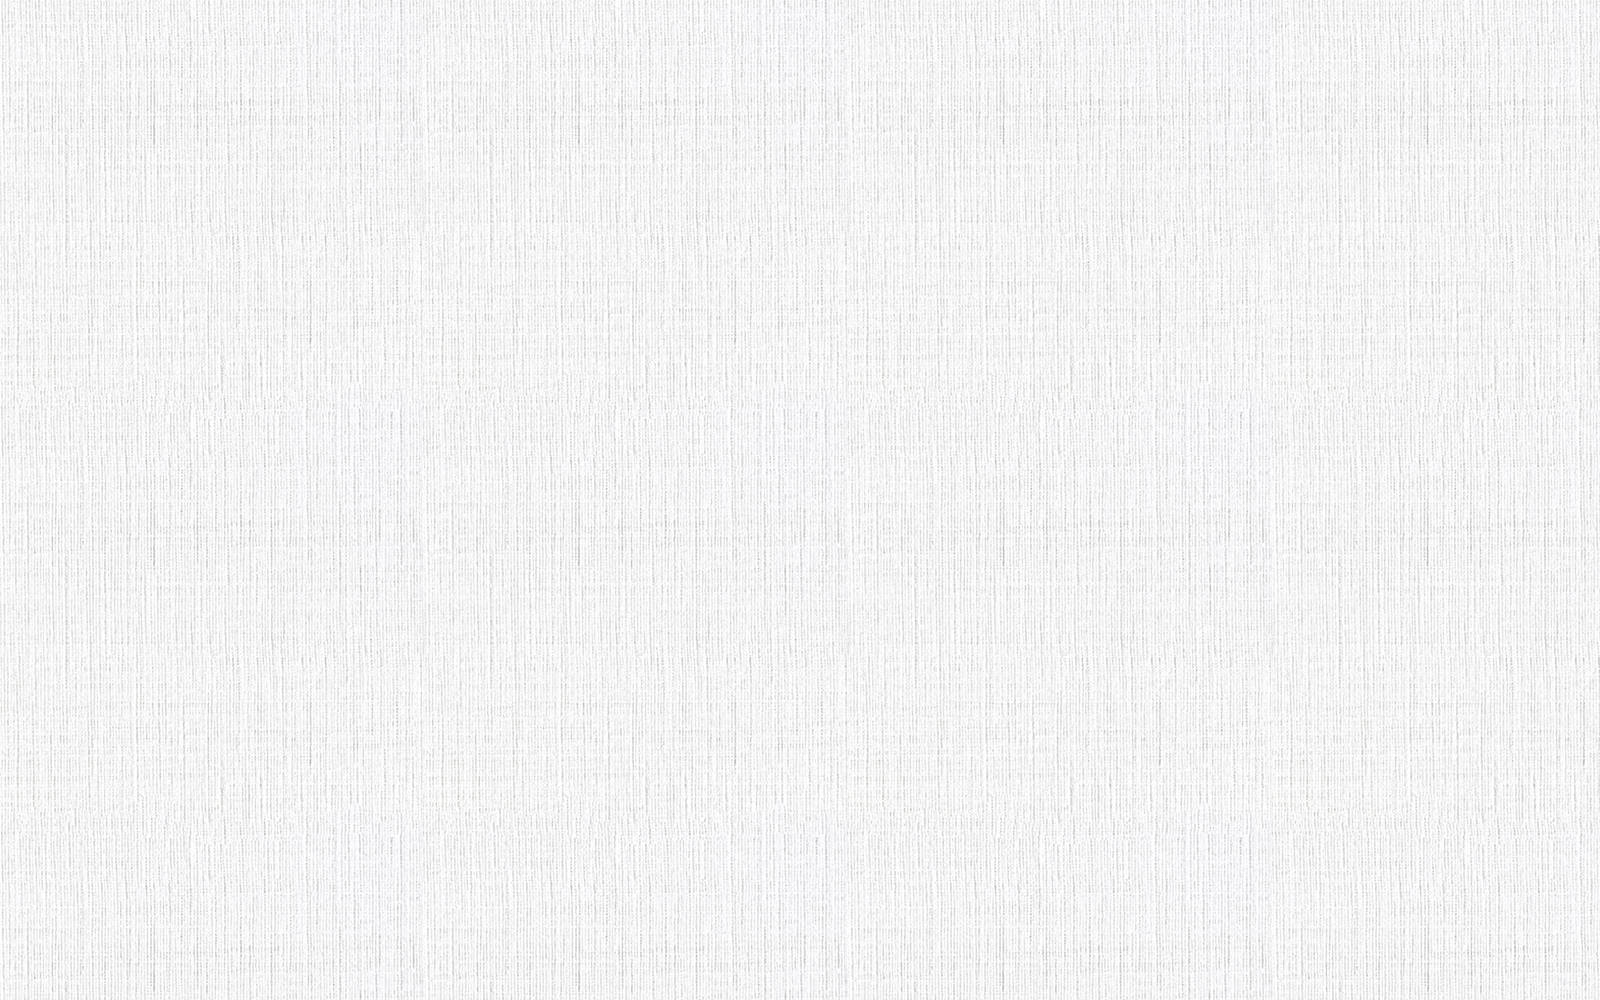 white-linen-background